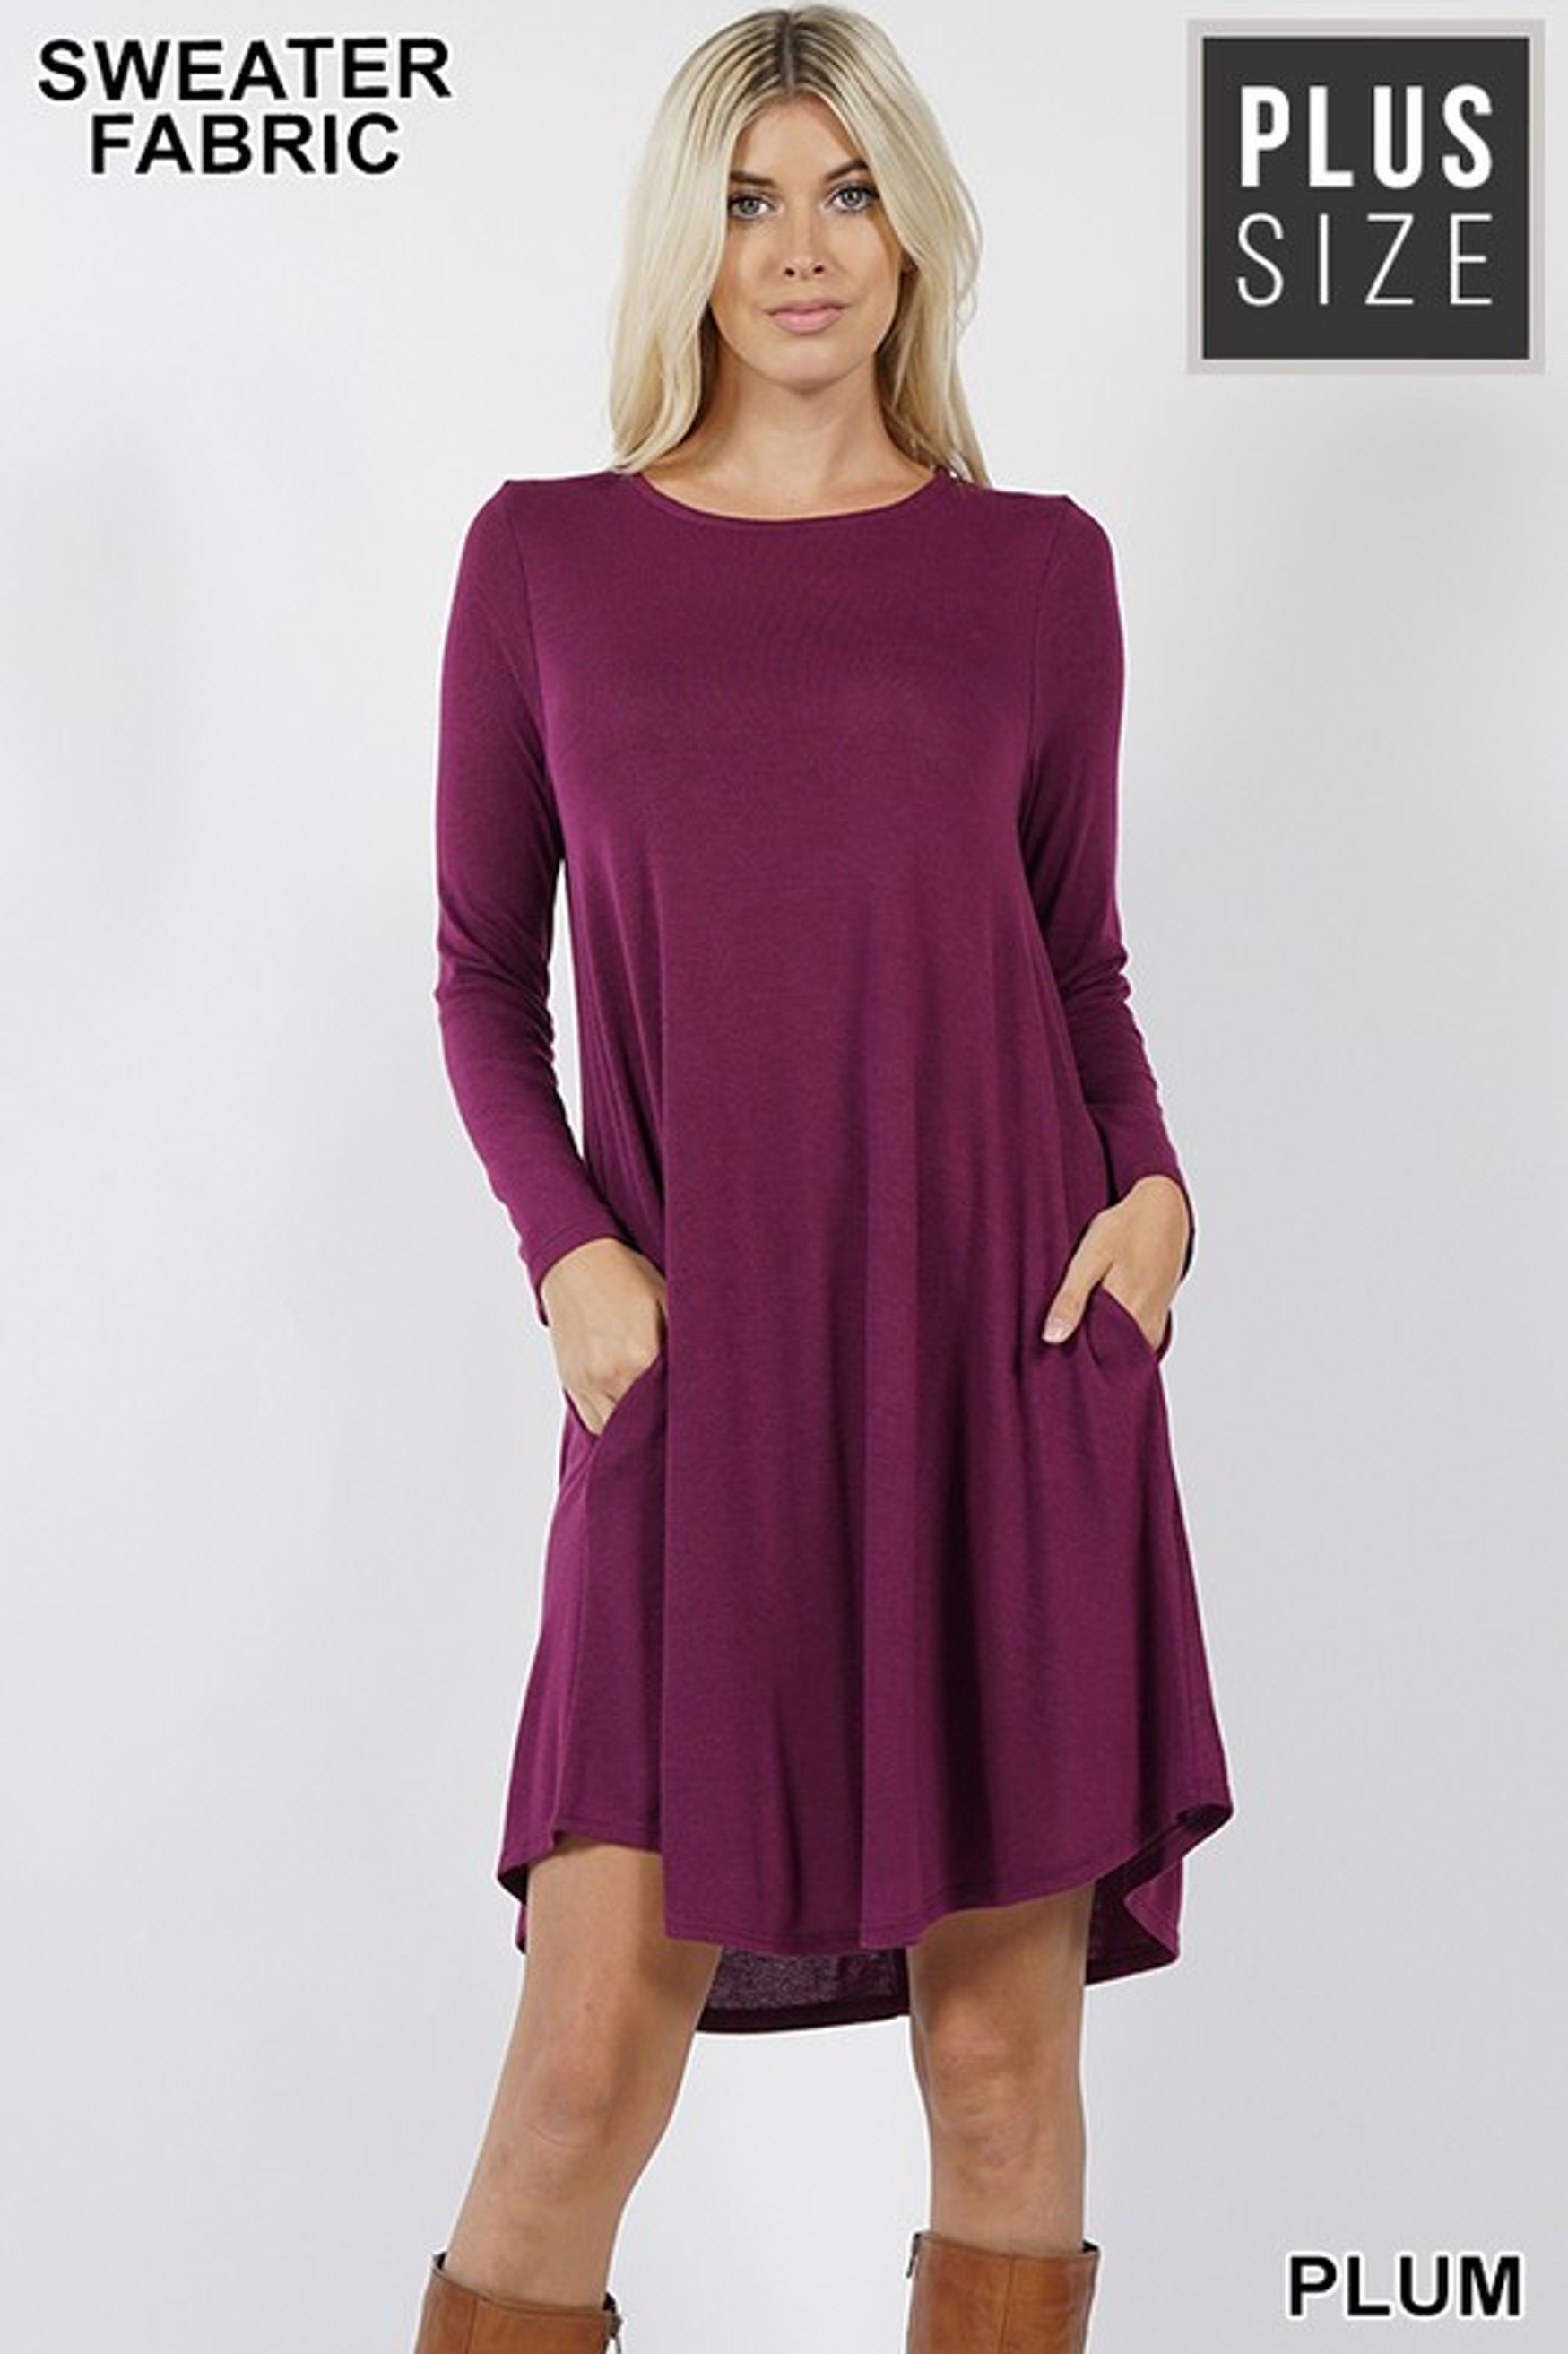 Premium Long Sleeve Sweater Longline Plus Size Tunic with Pockets